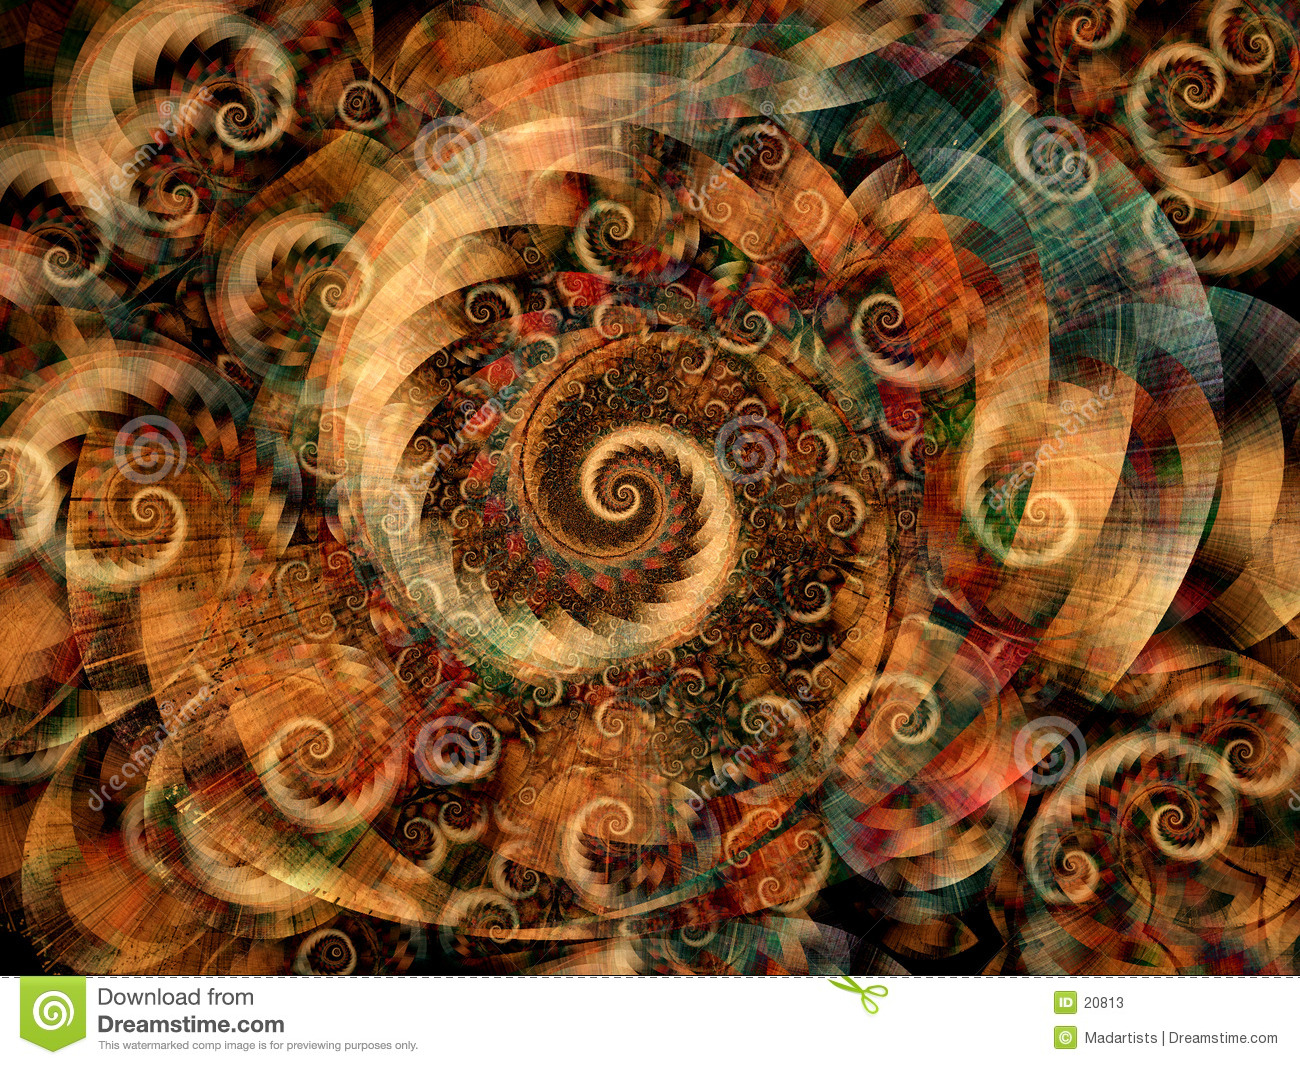 Cool Fractals Swirls Spirals Stock Photos - Image: 20813